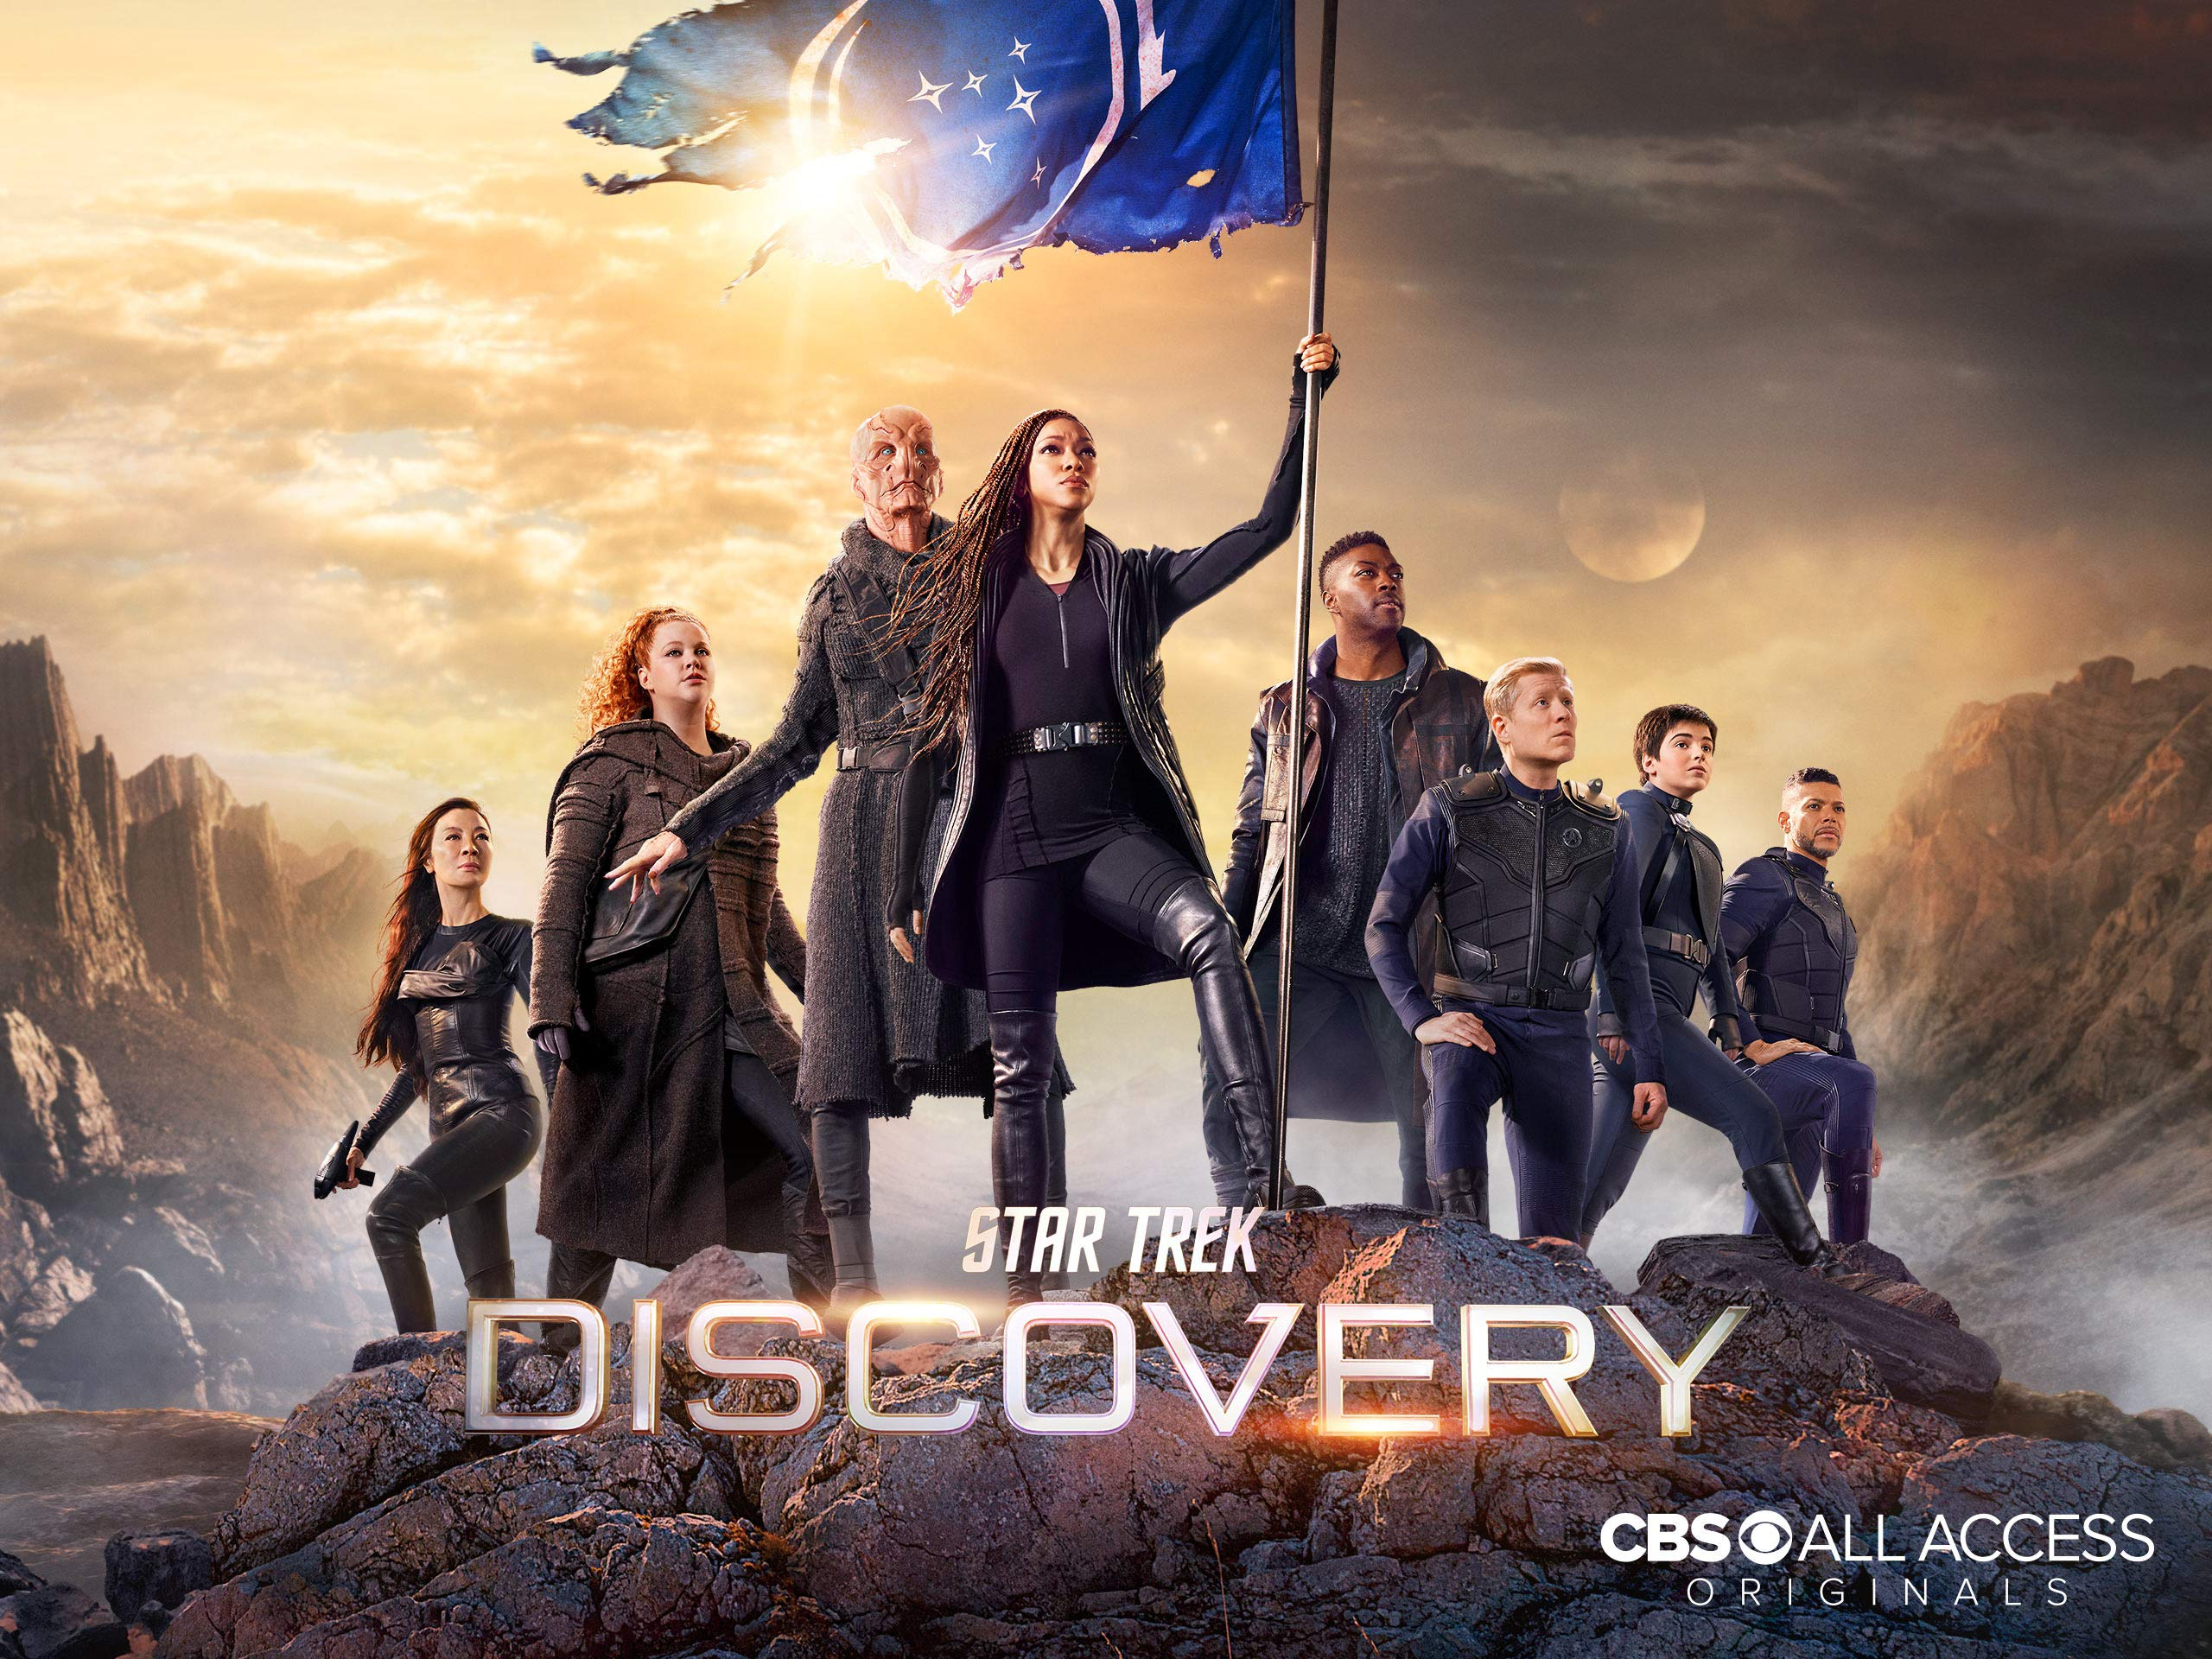 Star Trek: Discovery Season 2 Episode 10 Subtitle (English Srt) Download